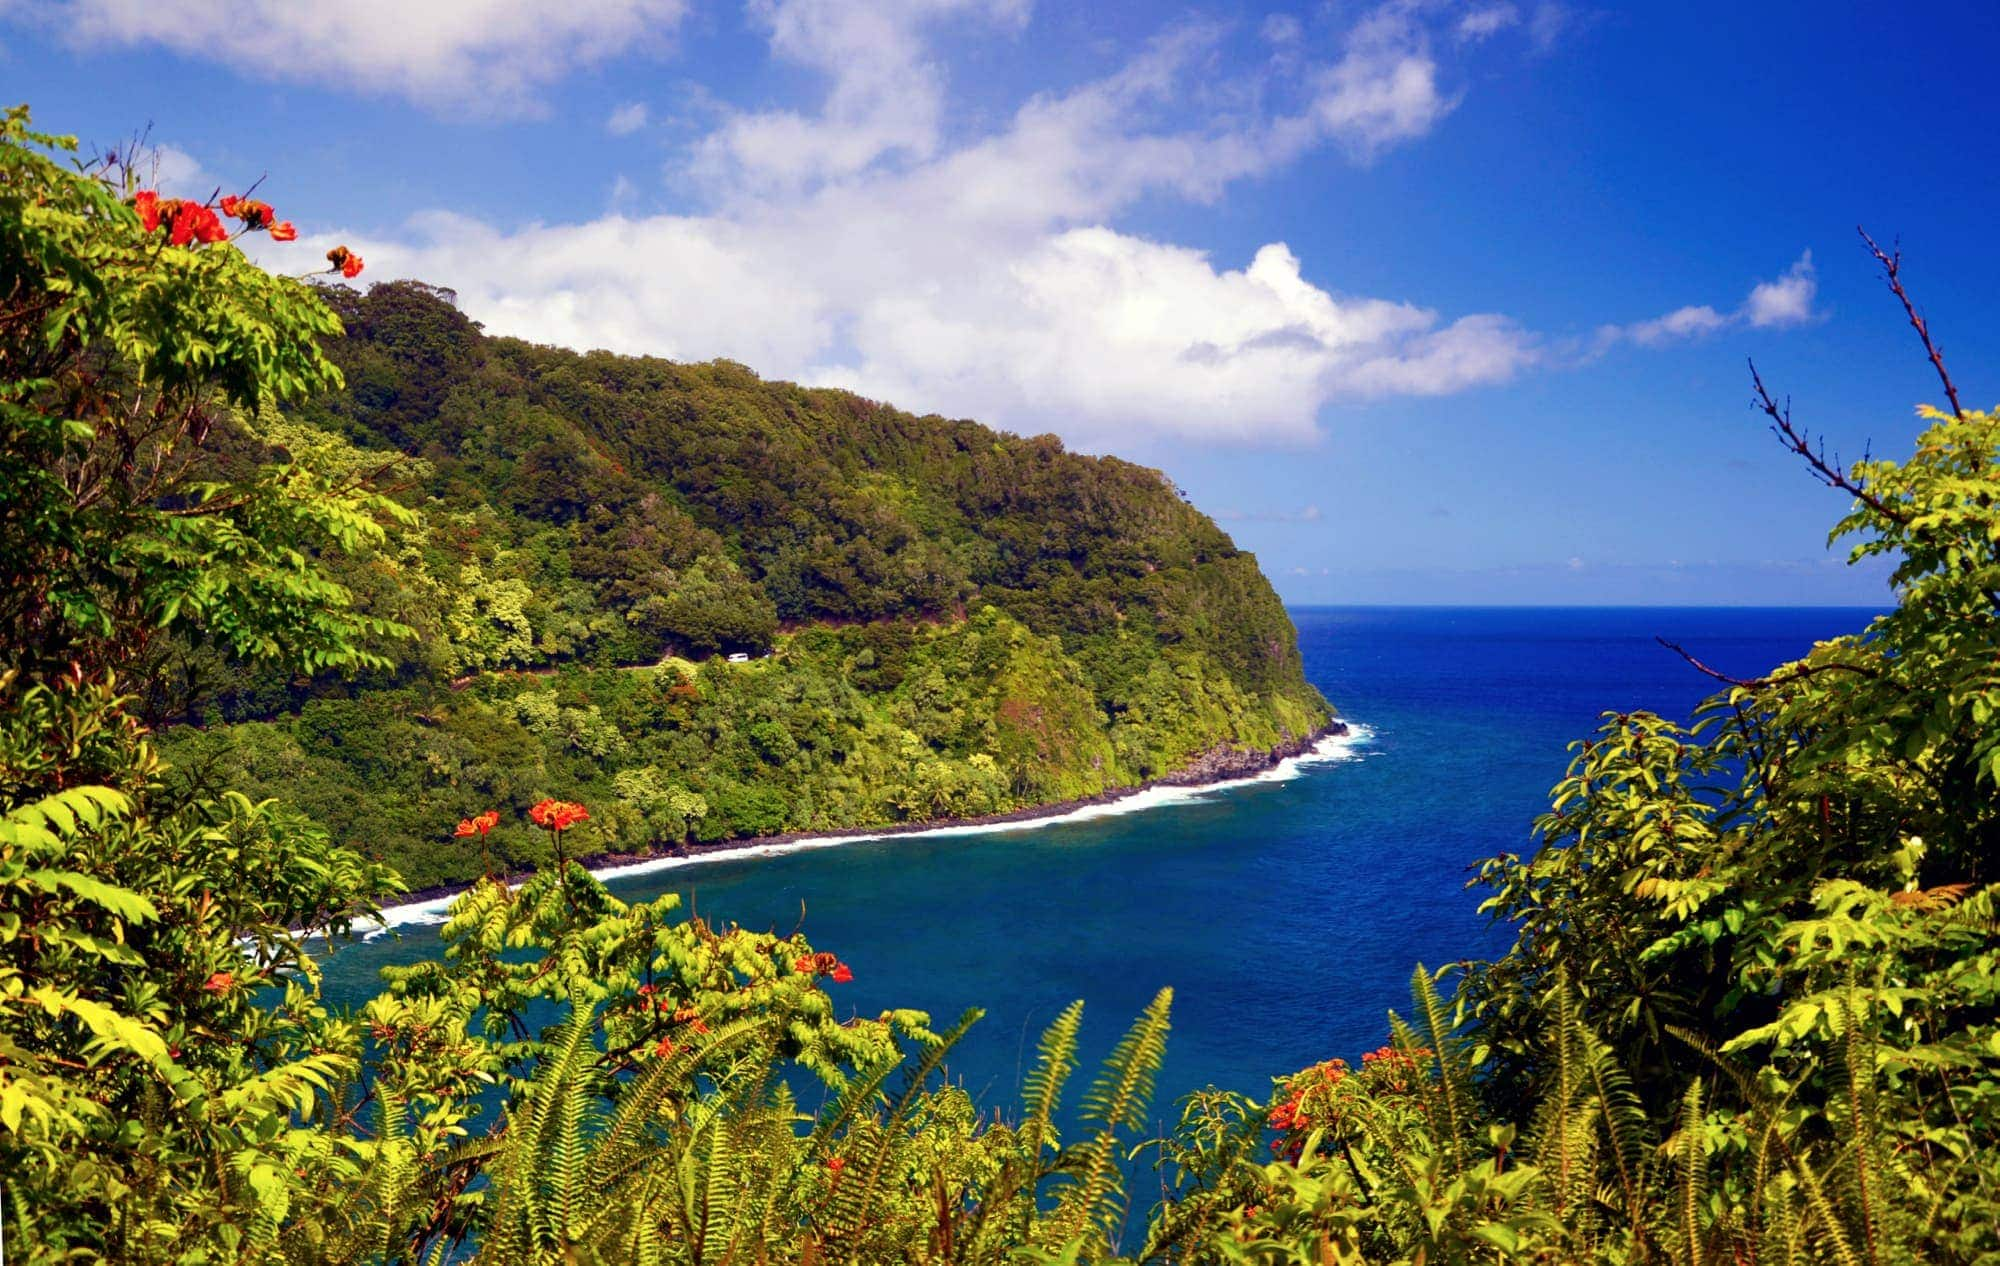 An Overview of Maui